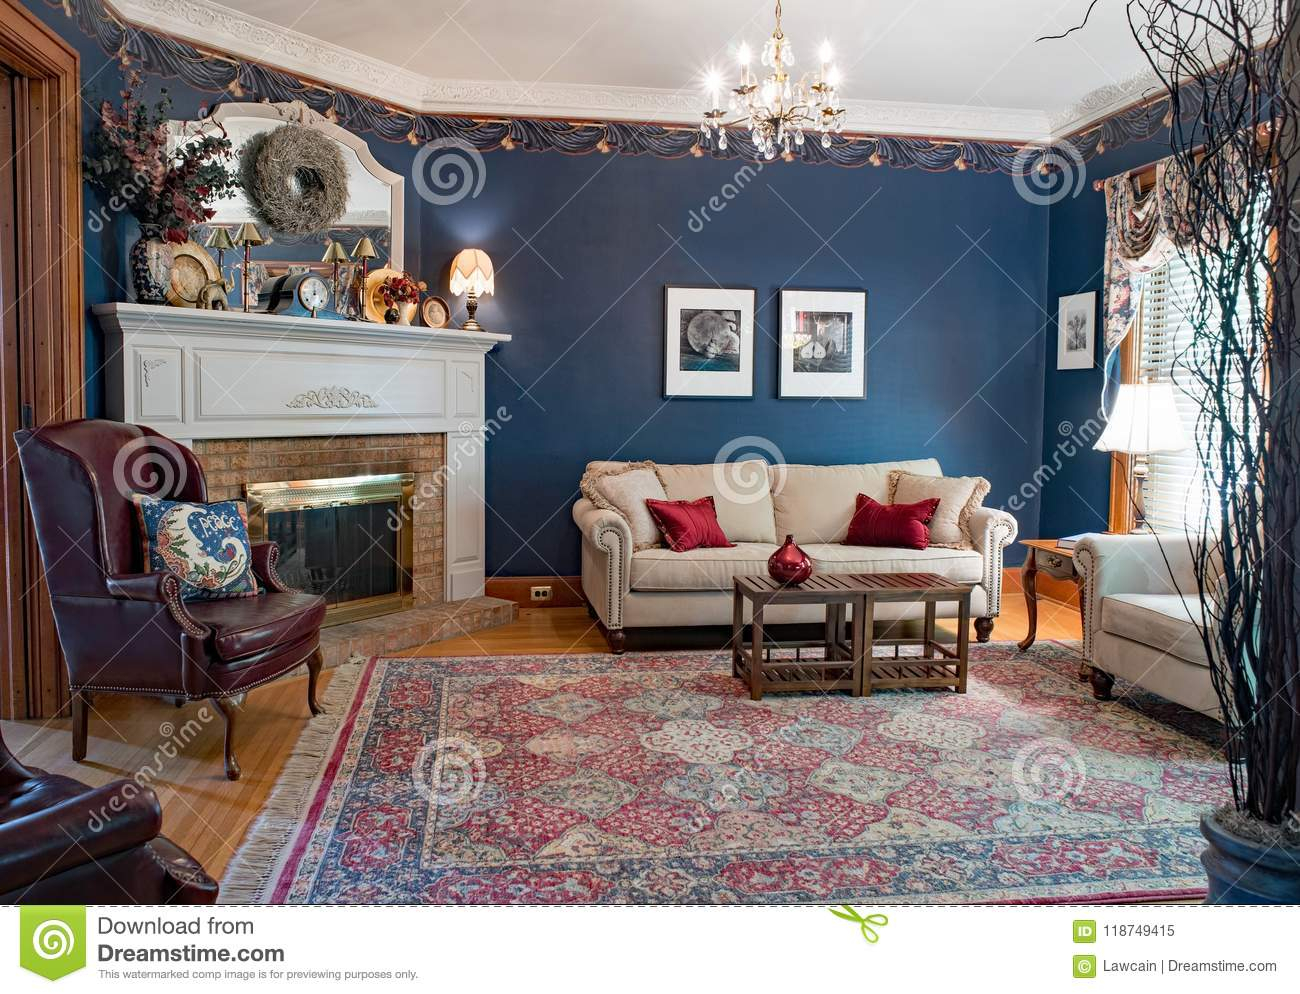 Cool Blue Victorian Living Room Editorial Image. Image Of Blue - 118749415 inside Living Room Dayton